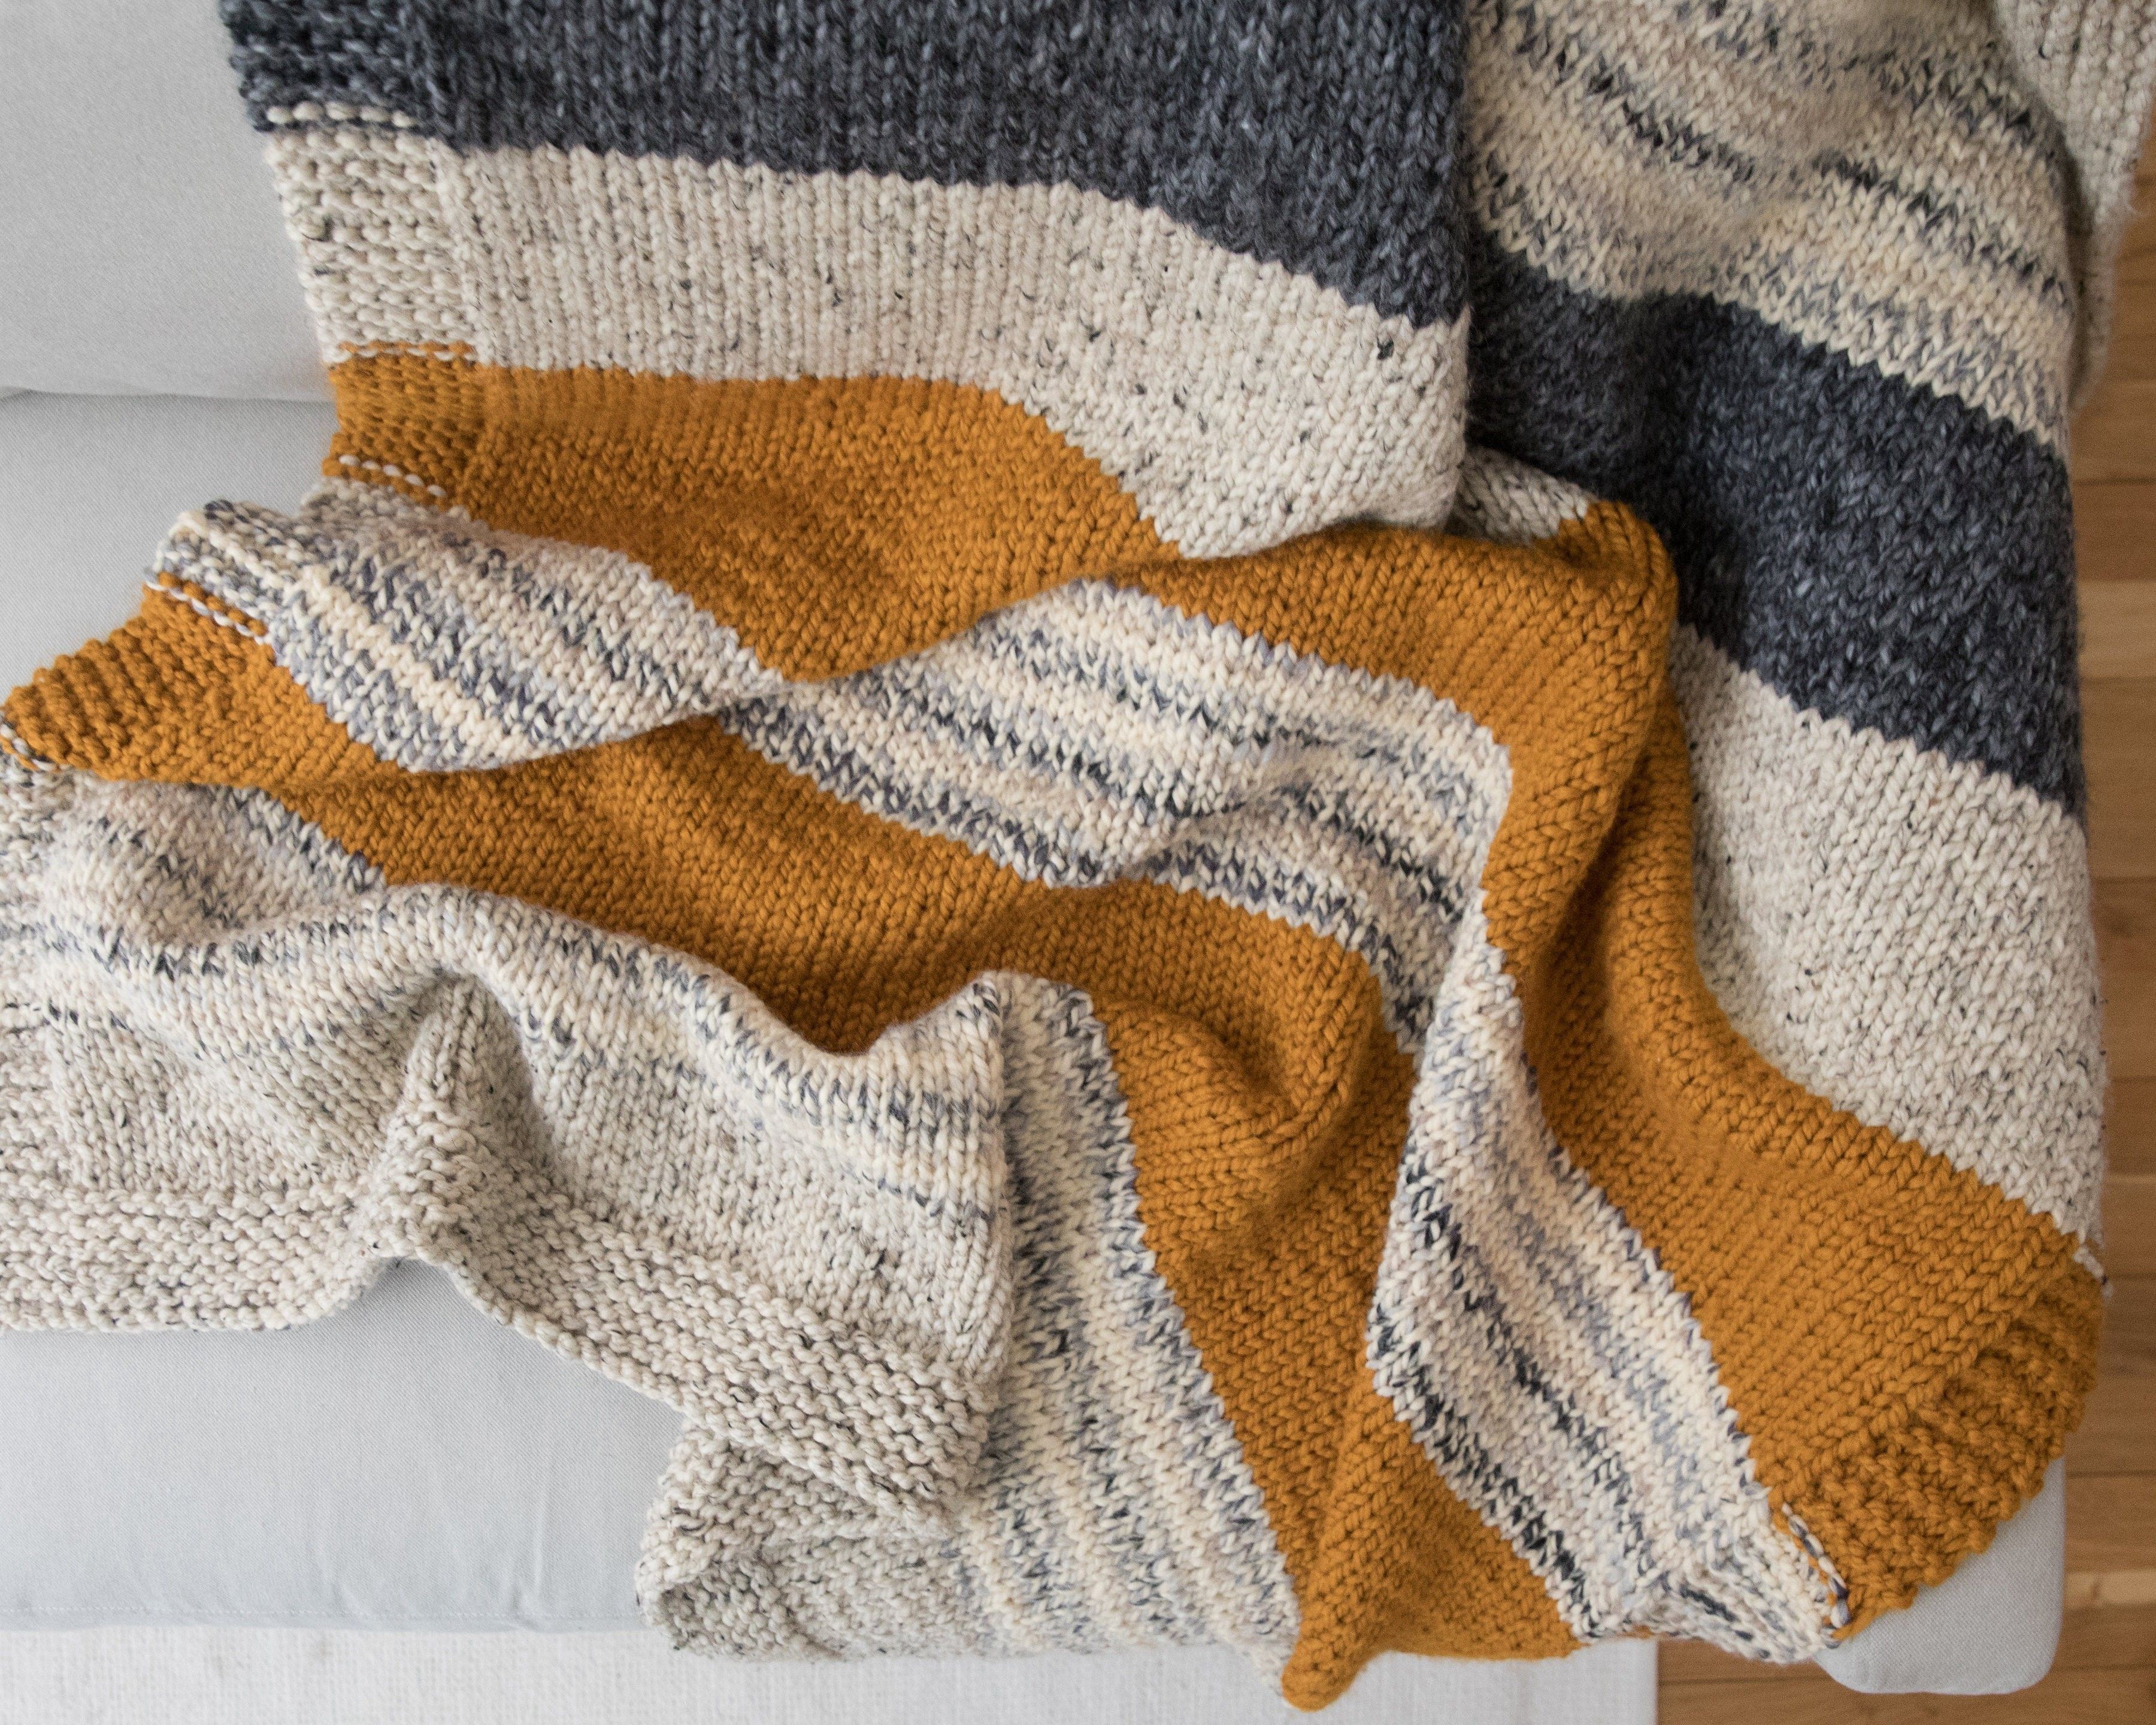 975c28f3d Knit Kit - Simple Striped Afghan  Out of Stock - ETA May 17th